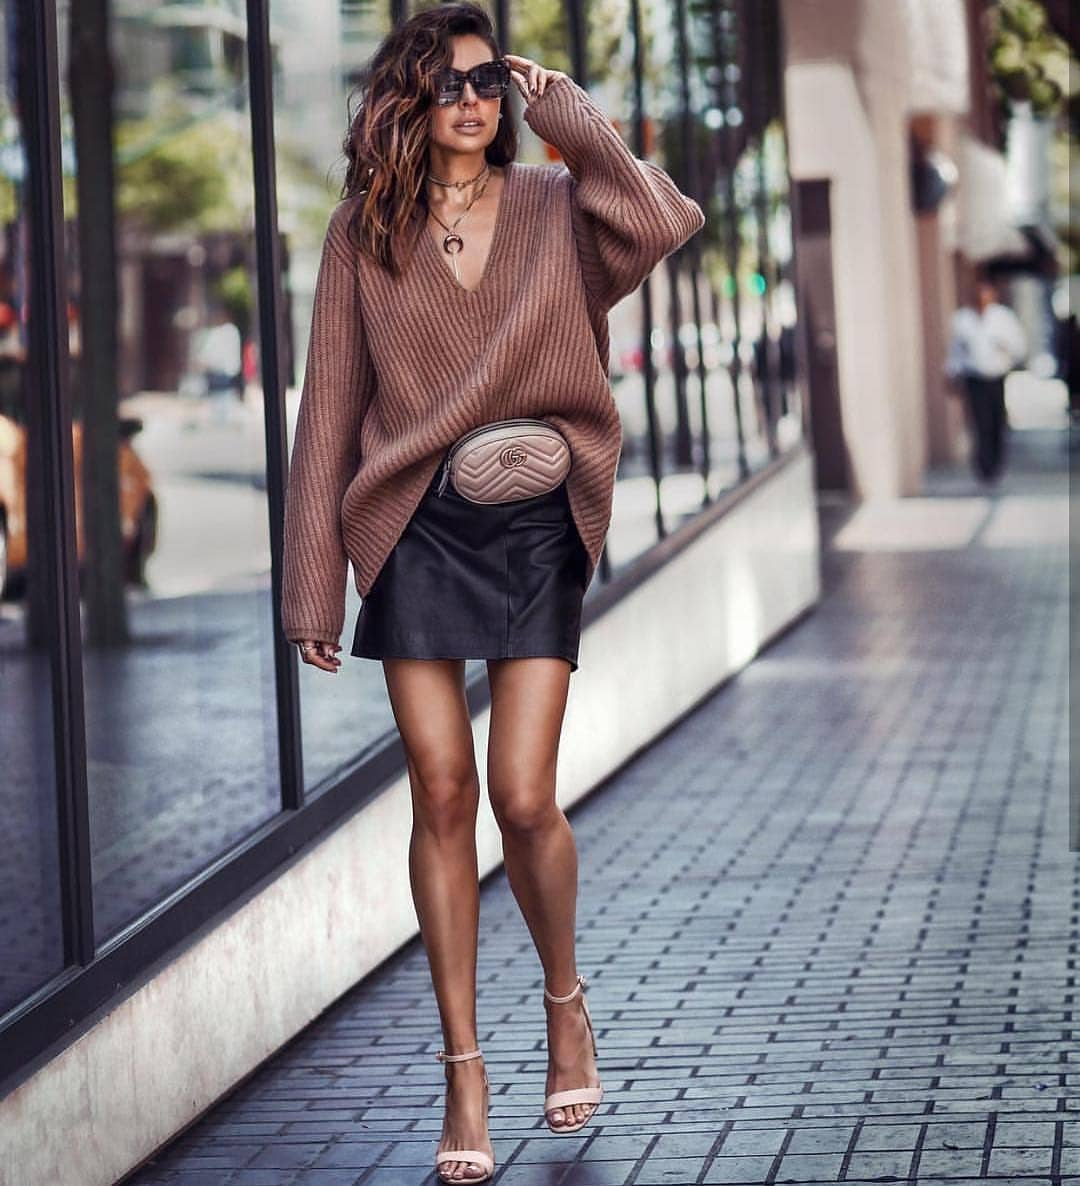 Oversized V-neck Sweater And Black Leather Skirt For Summer 2020